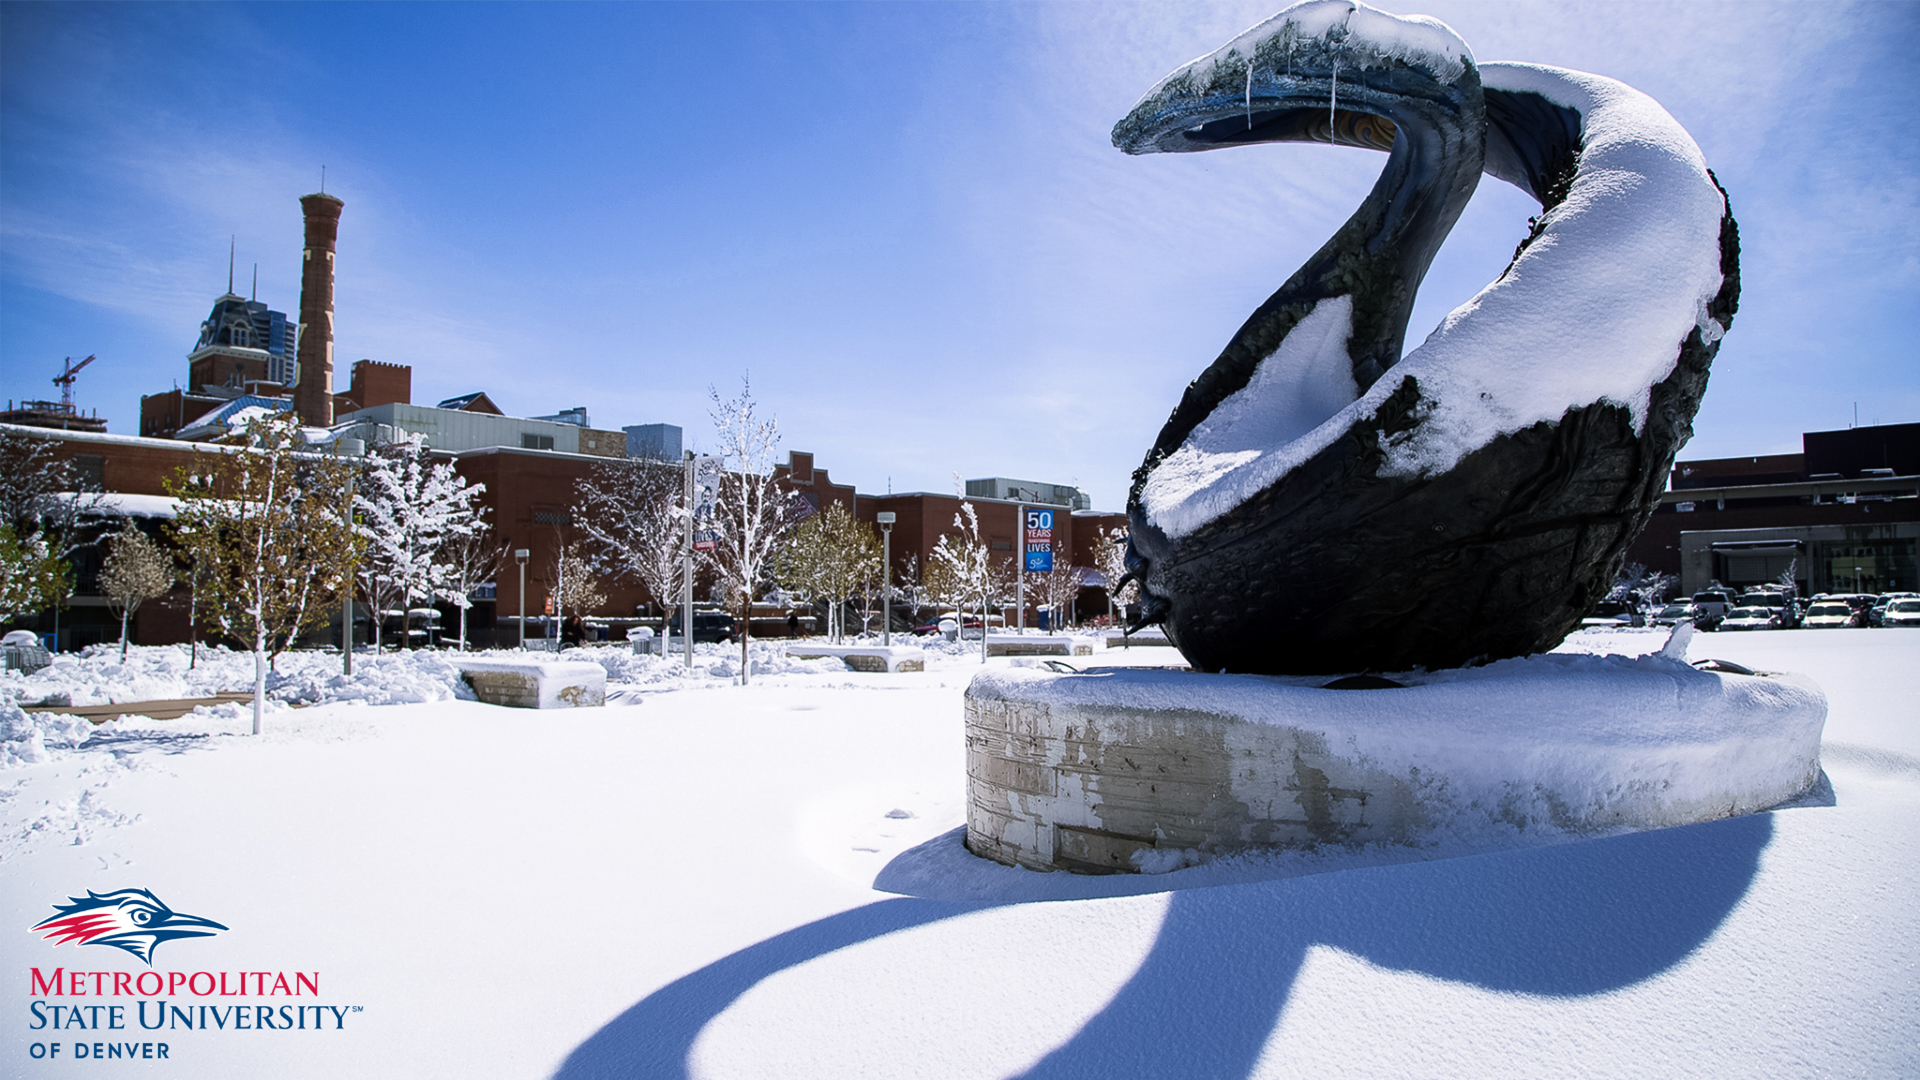 One World One Water sculpture covered in snow